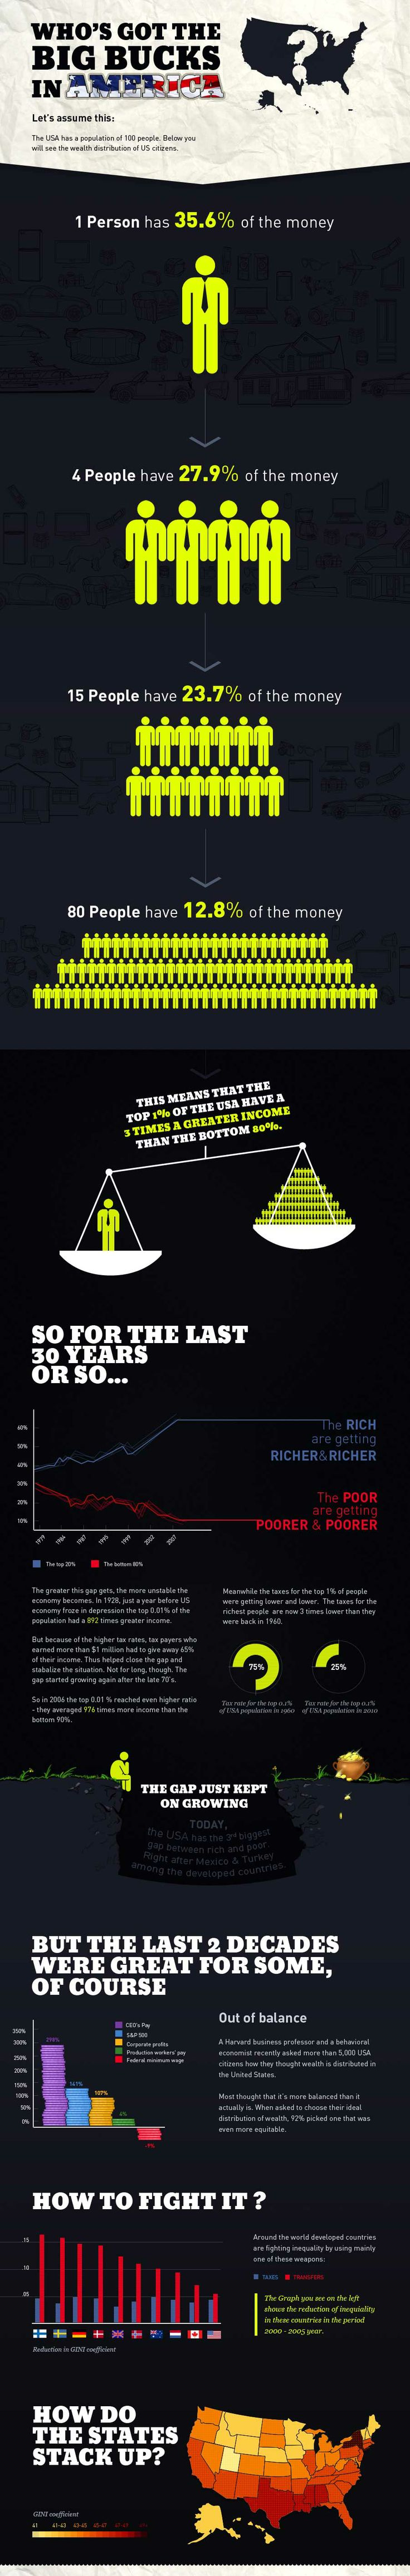 This helps the numbers about wealth distribution have more meaning.